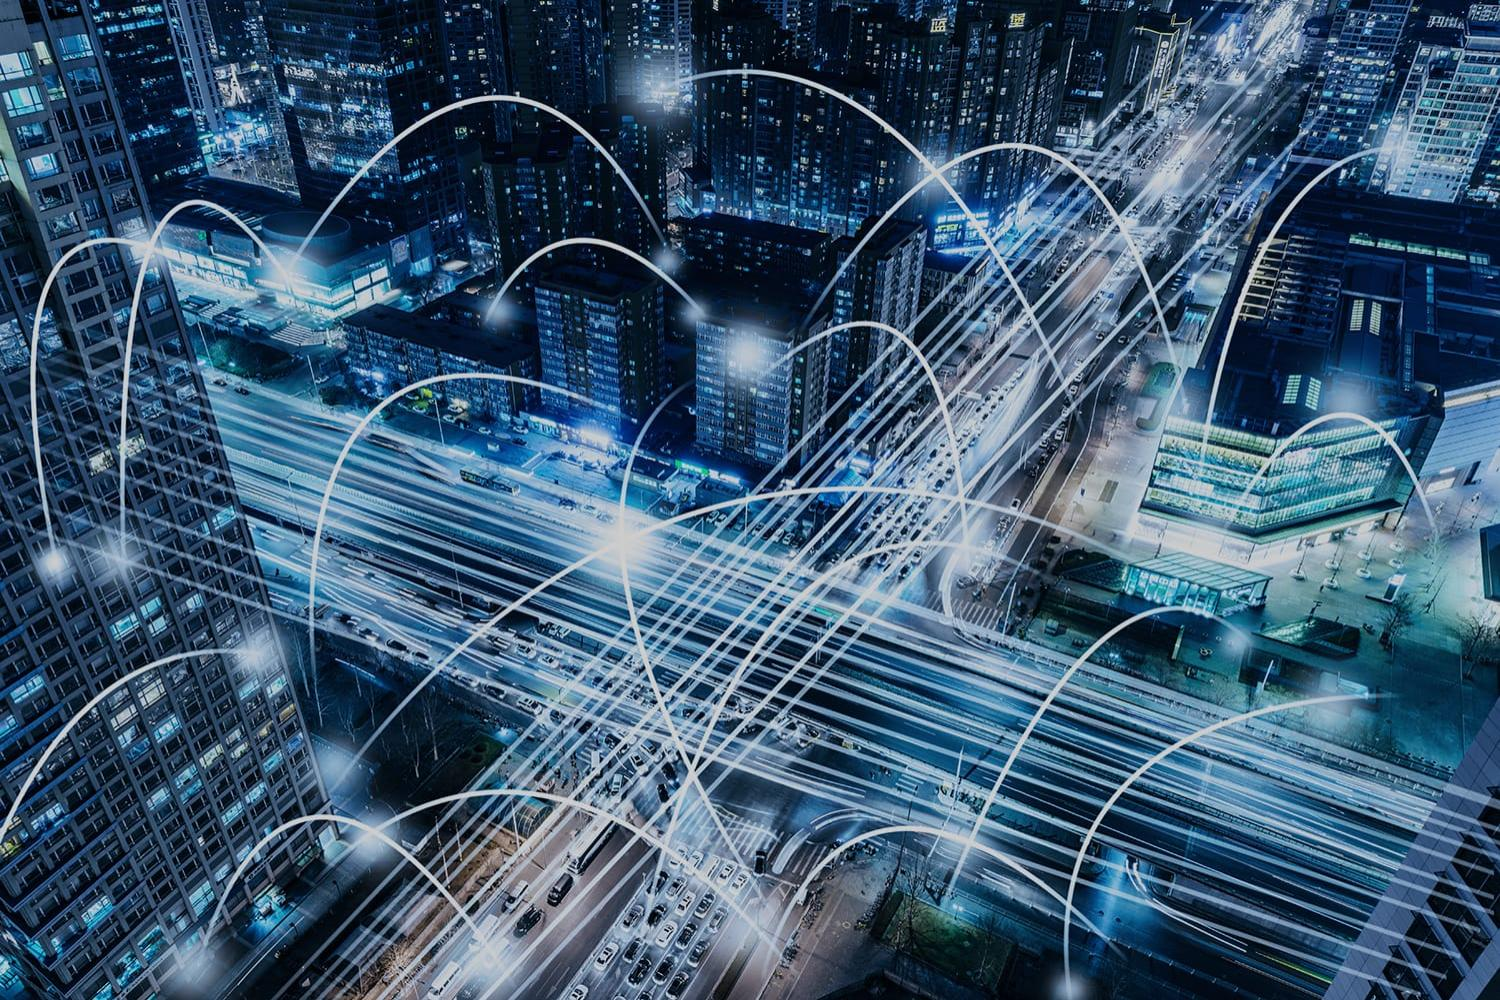 Cityscape at night with network connected data points